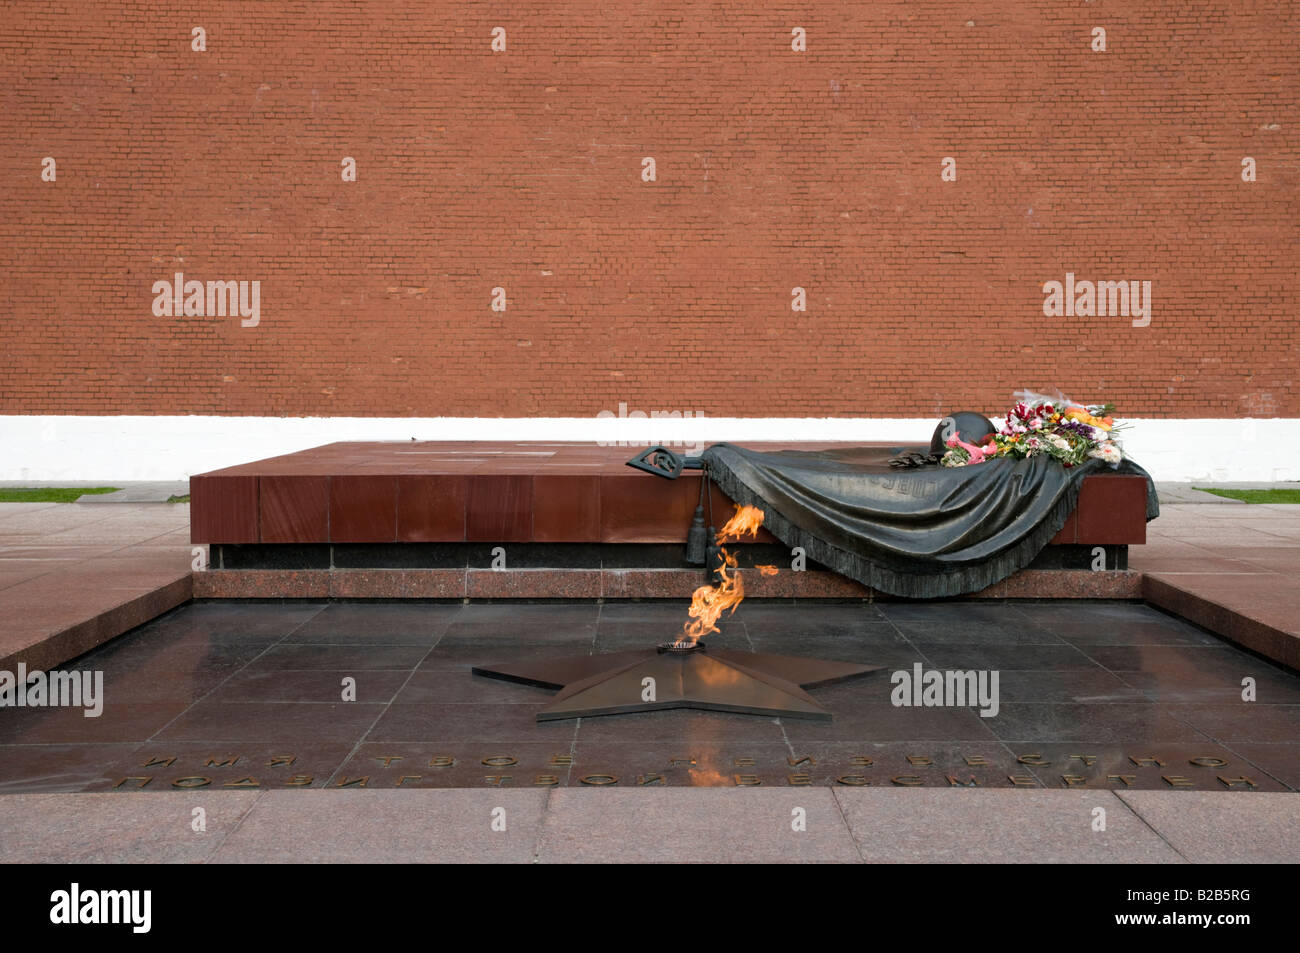 The Tomb of the Unknown Soldier in Alexander Gardens, Moscow, Russia - Stock Image